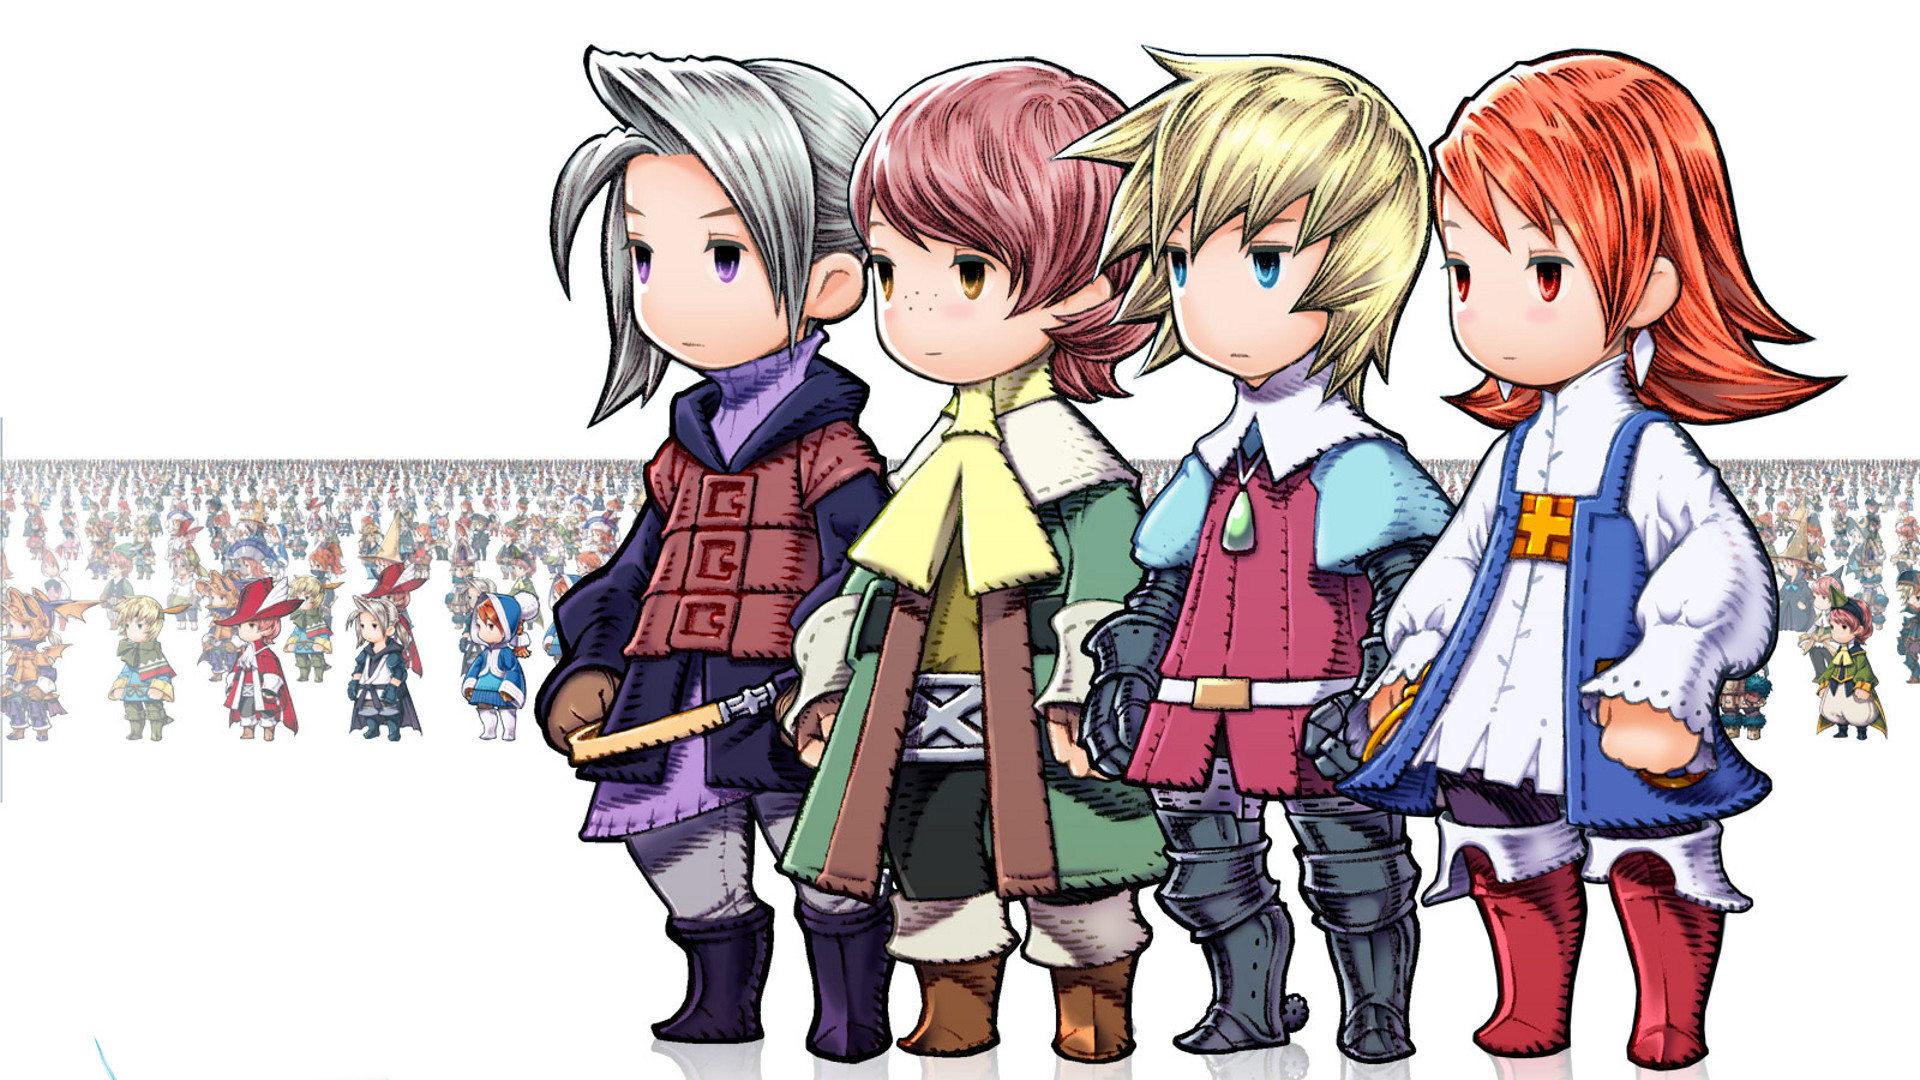 1920x1080 Wallpaper #18 Wallpaper from Final Fantasy III